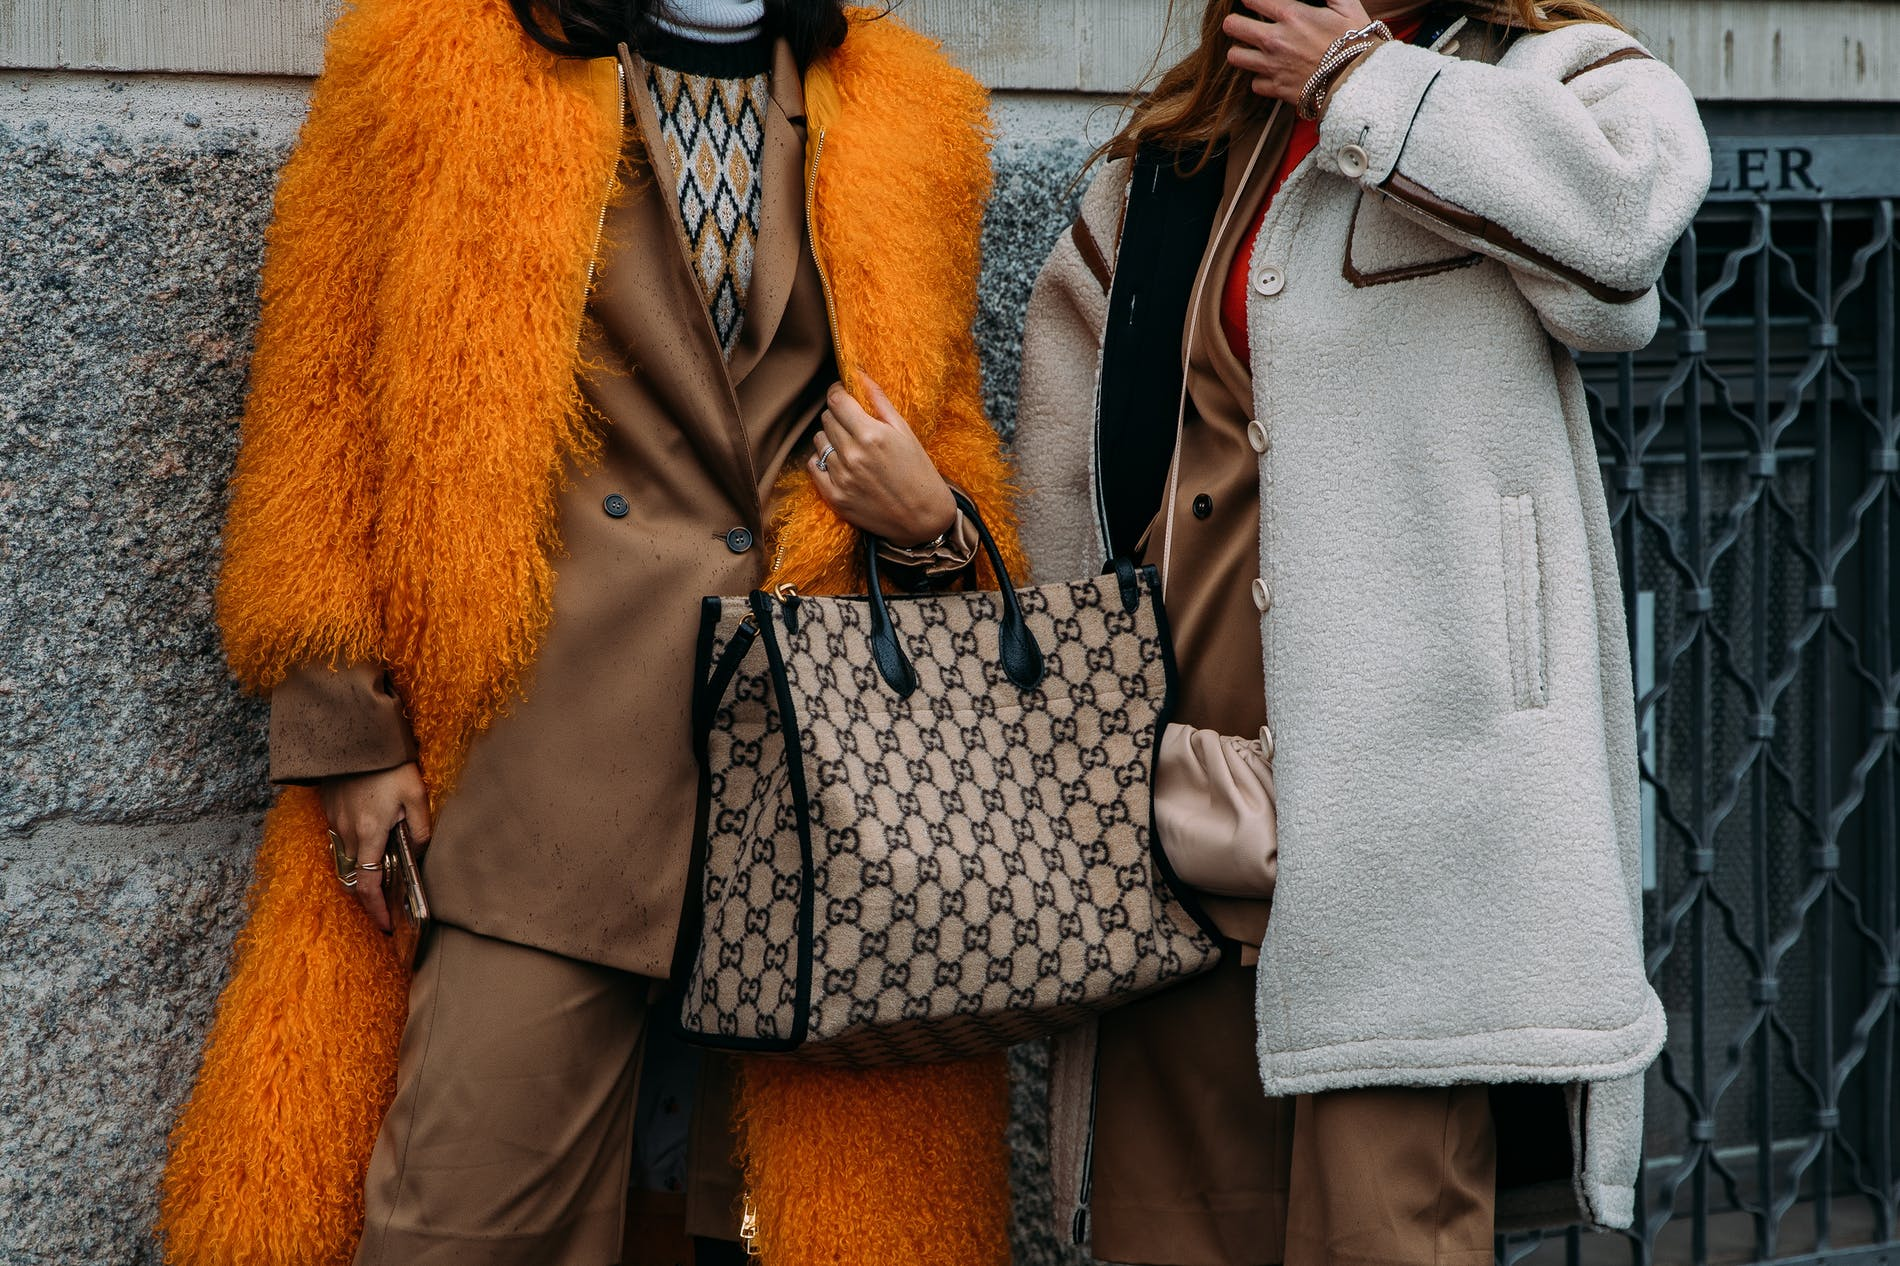 1614165712141416 copenhagen cphfw fall 20 day 2 by styledumonde street style fashion photography20200129 48a9405fullres